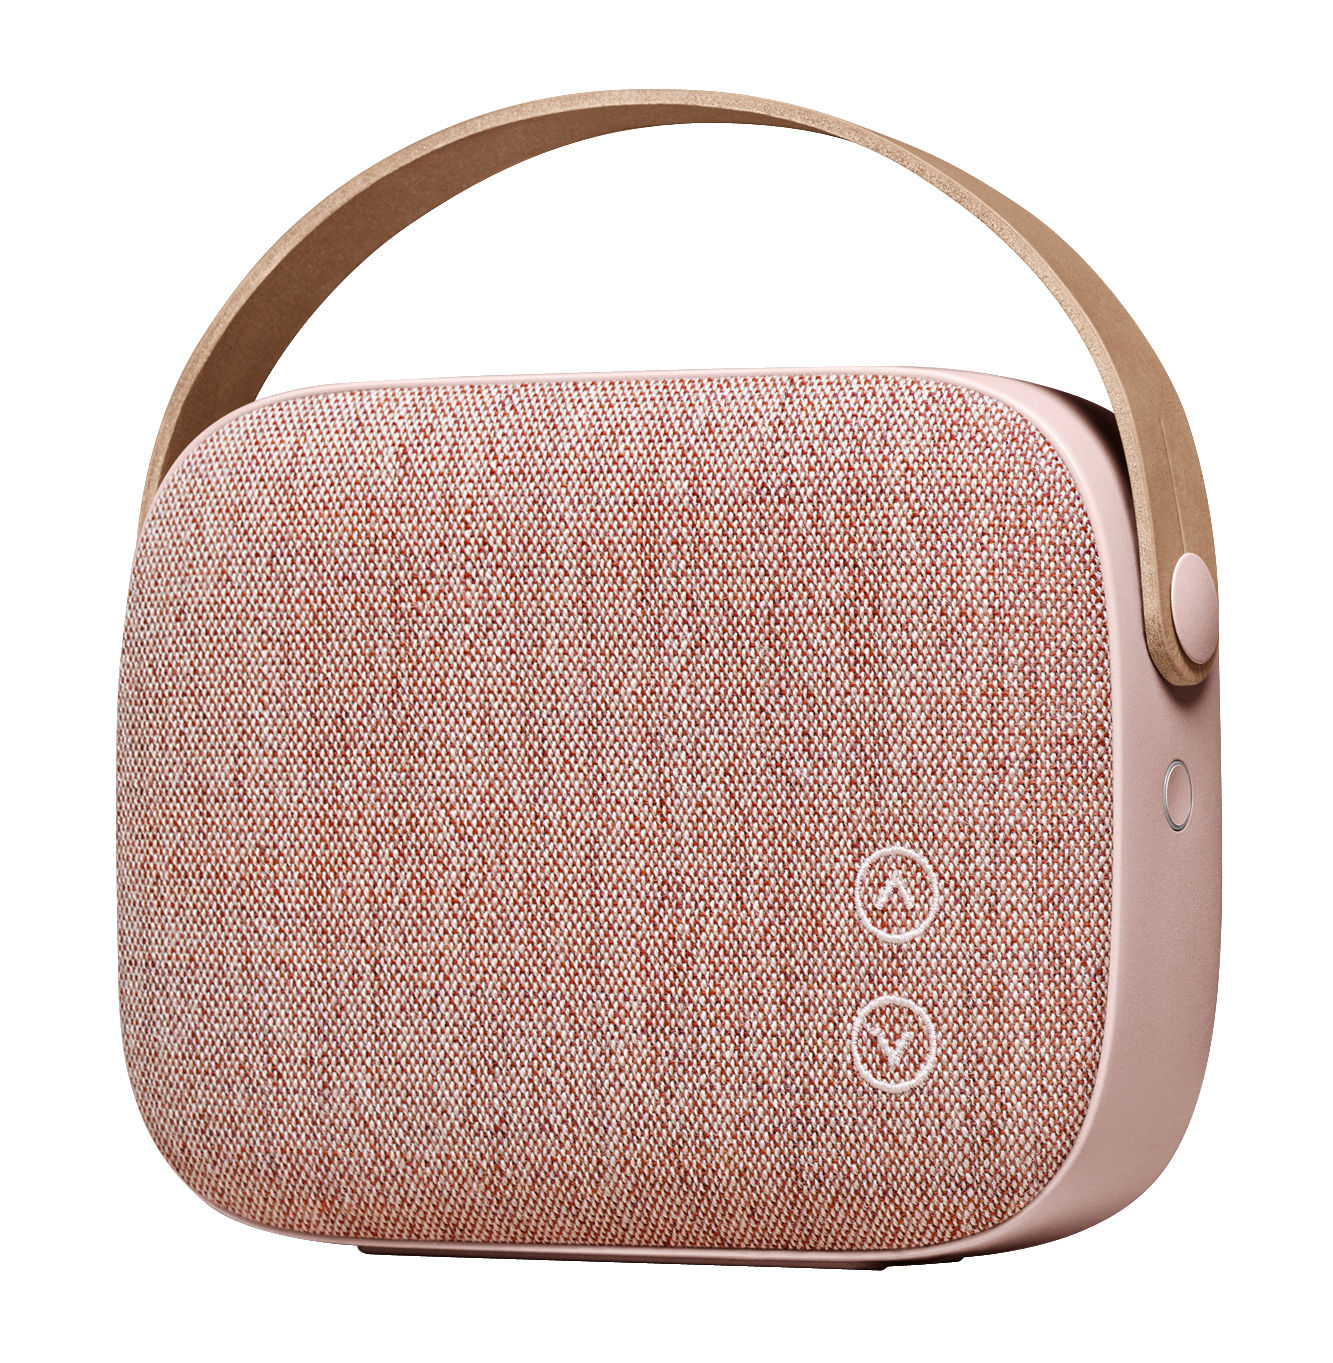 Product selections - Valentine's day - Helsinki Bluetooth speaker - Bluetooth / Fabric & leather by Vifa - Pink - Aluminium, Kvadrat fabric, Leather